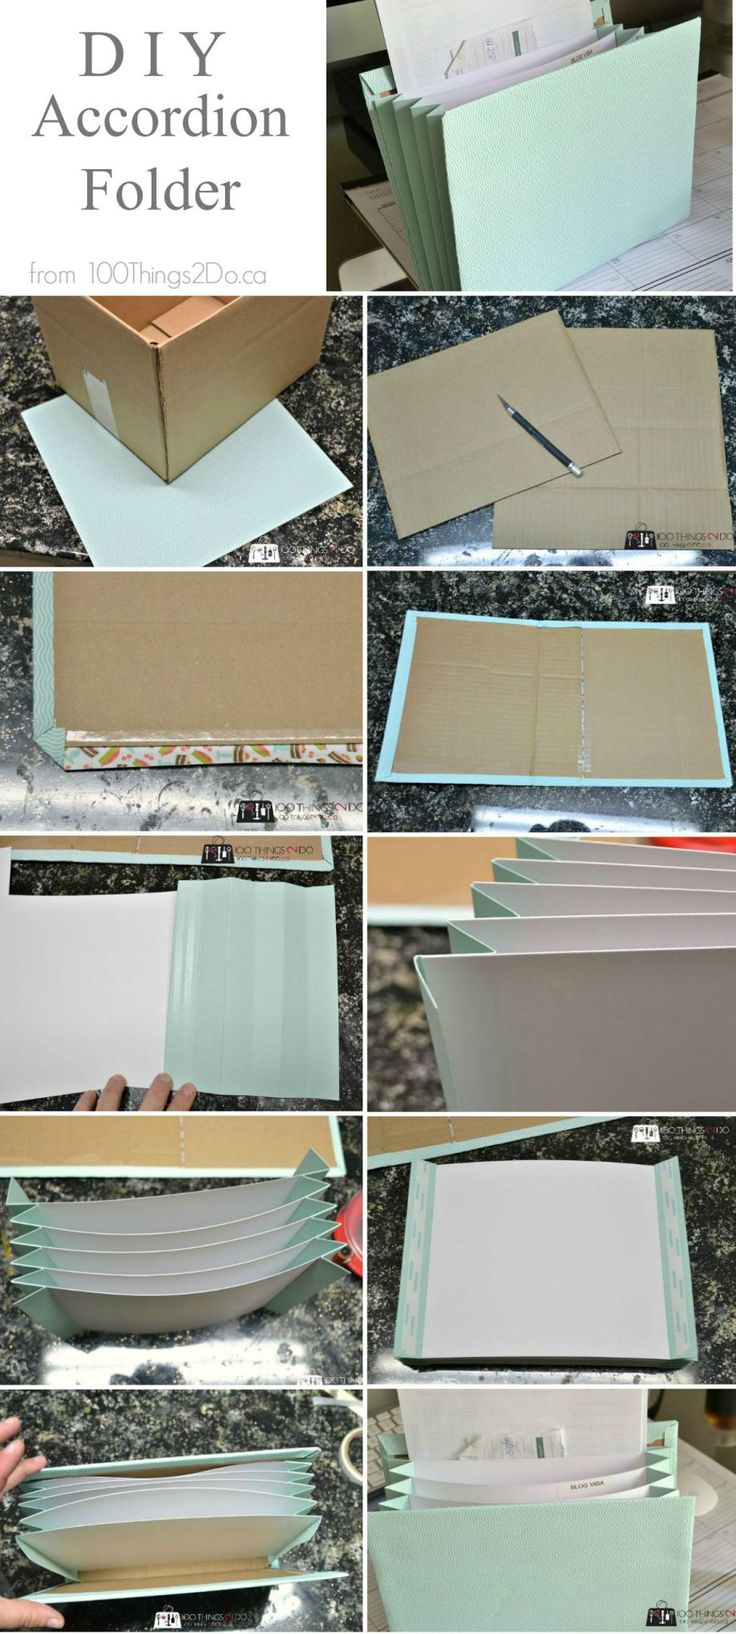 DIY Accordion folder from scrapbook paper and cardboard                                                                                                                                                                                 More